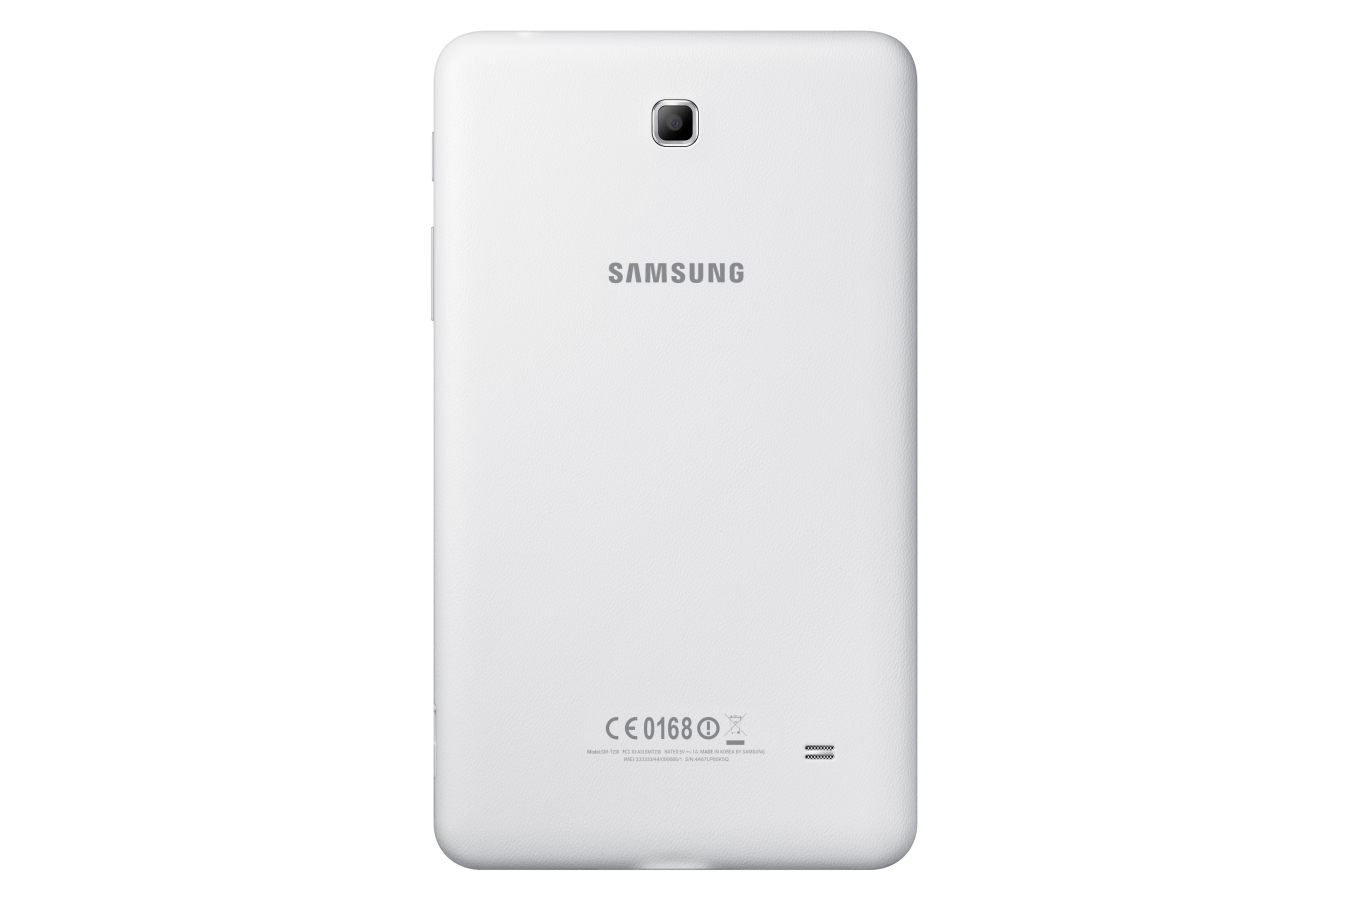 Samsung Galaxy Tab 4 7.0 Release May 1